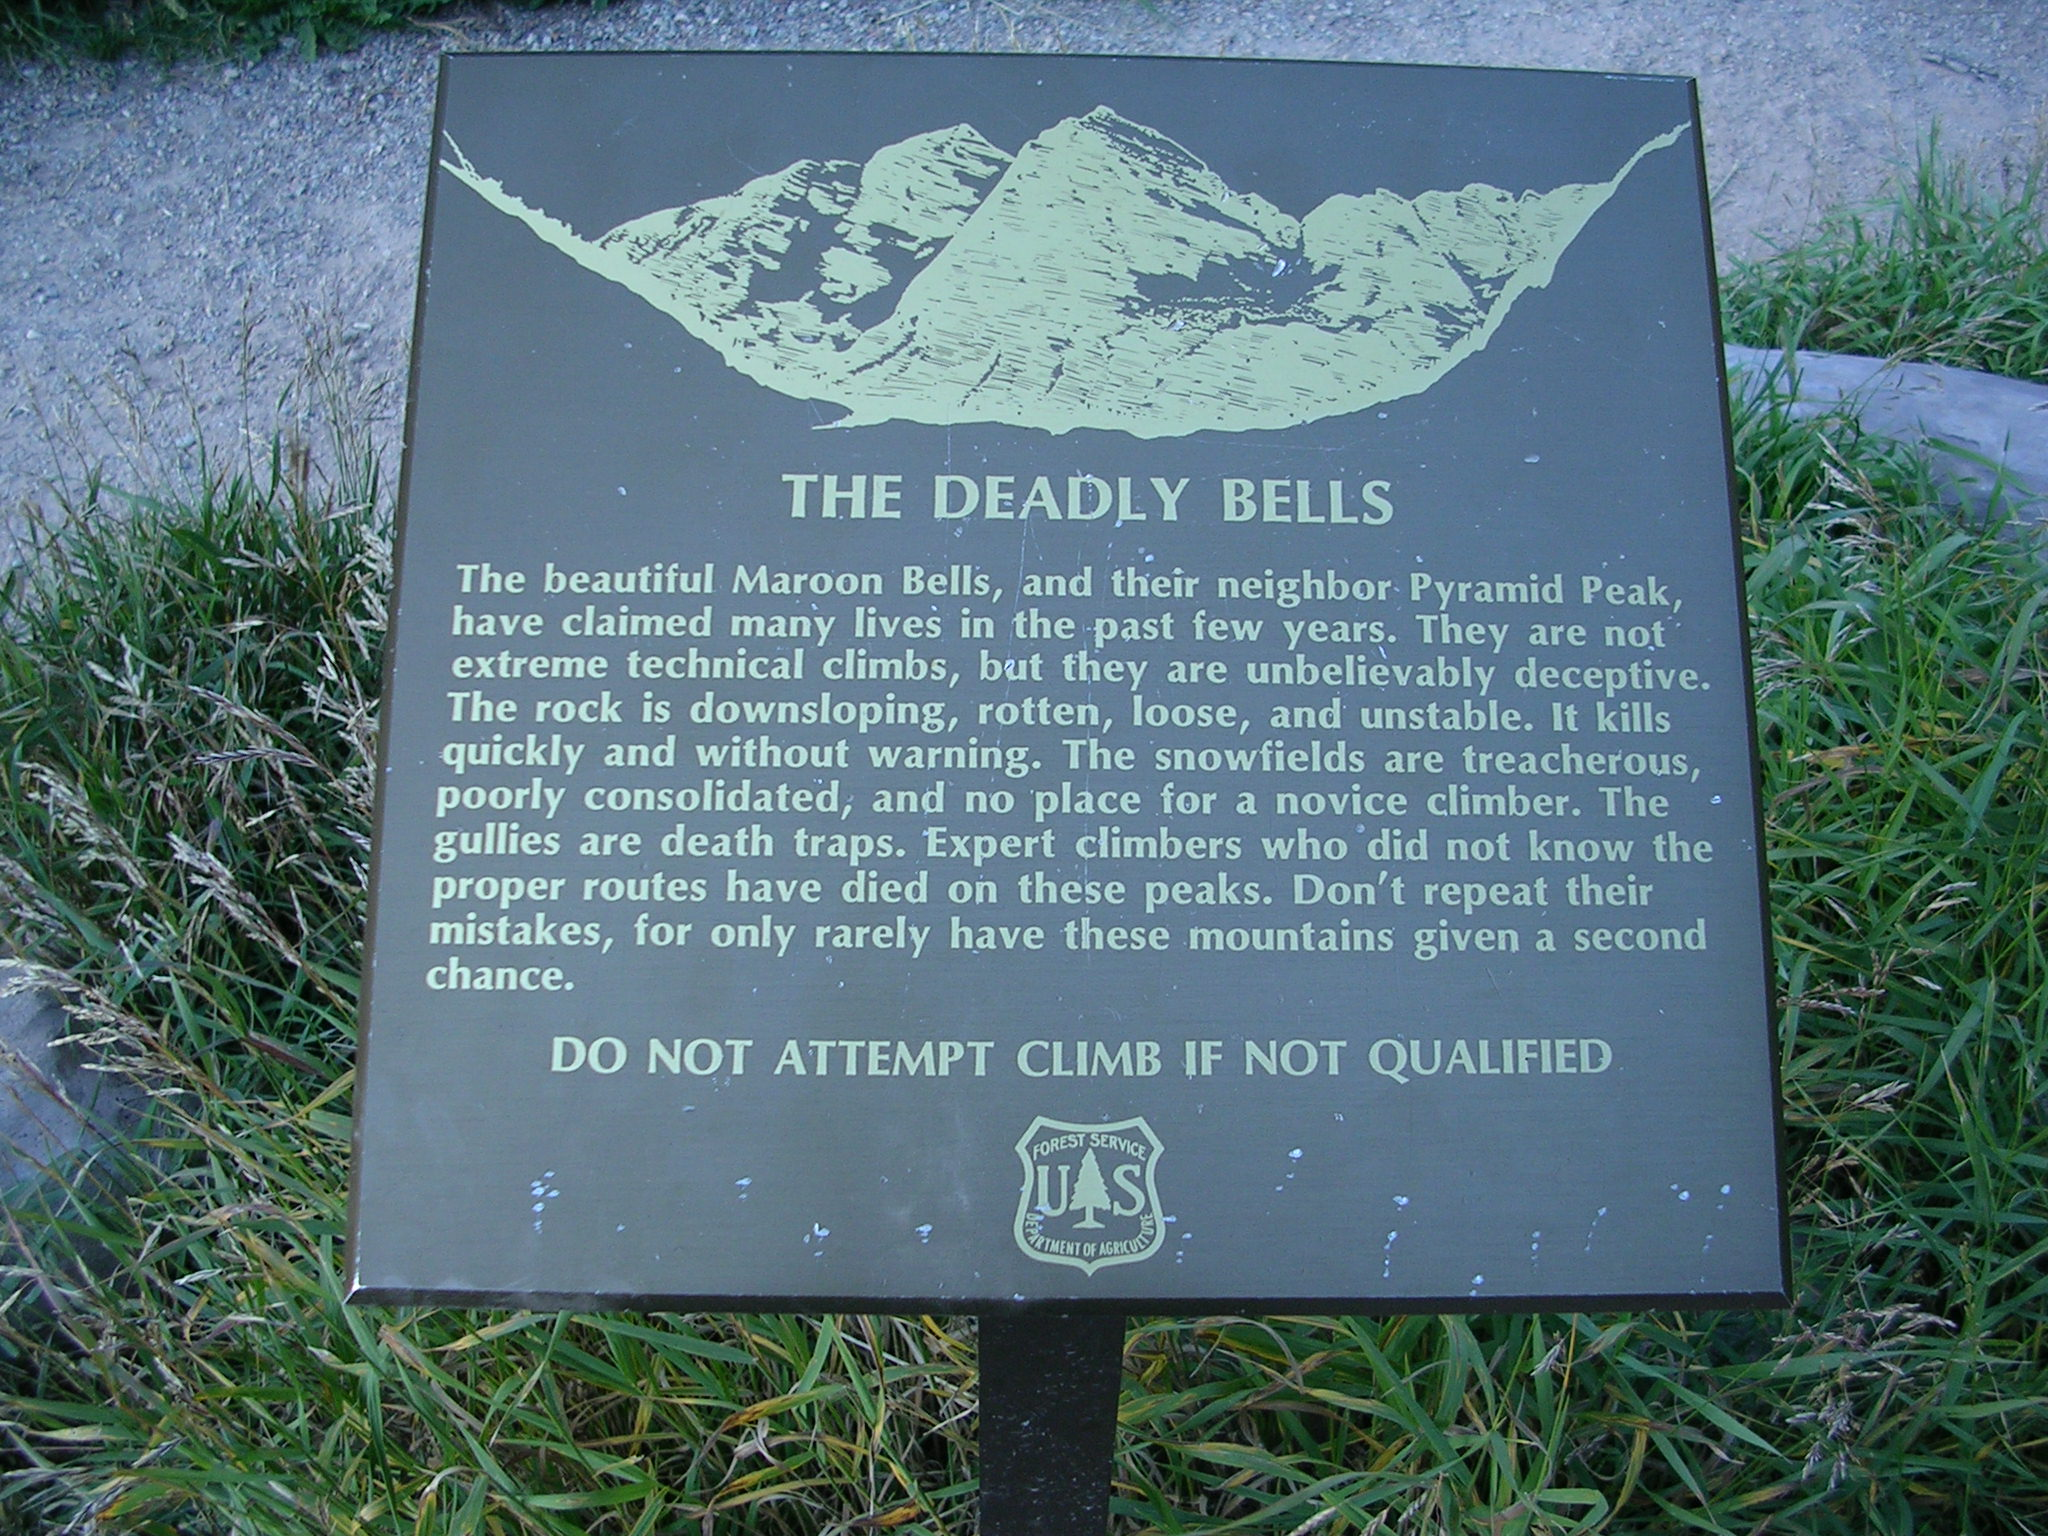 The Deadly Bells